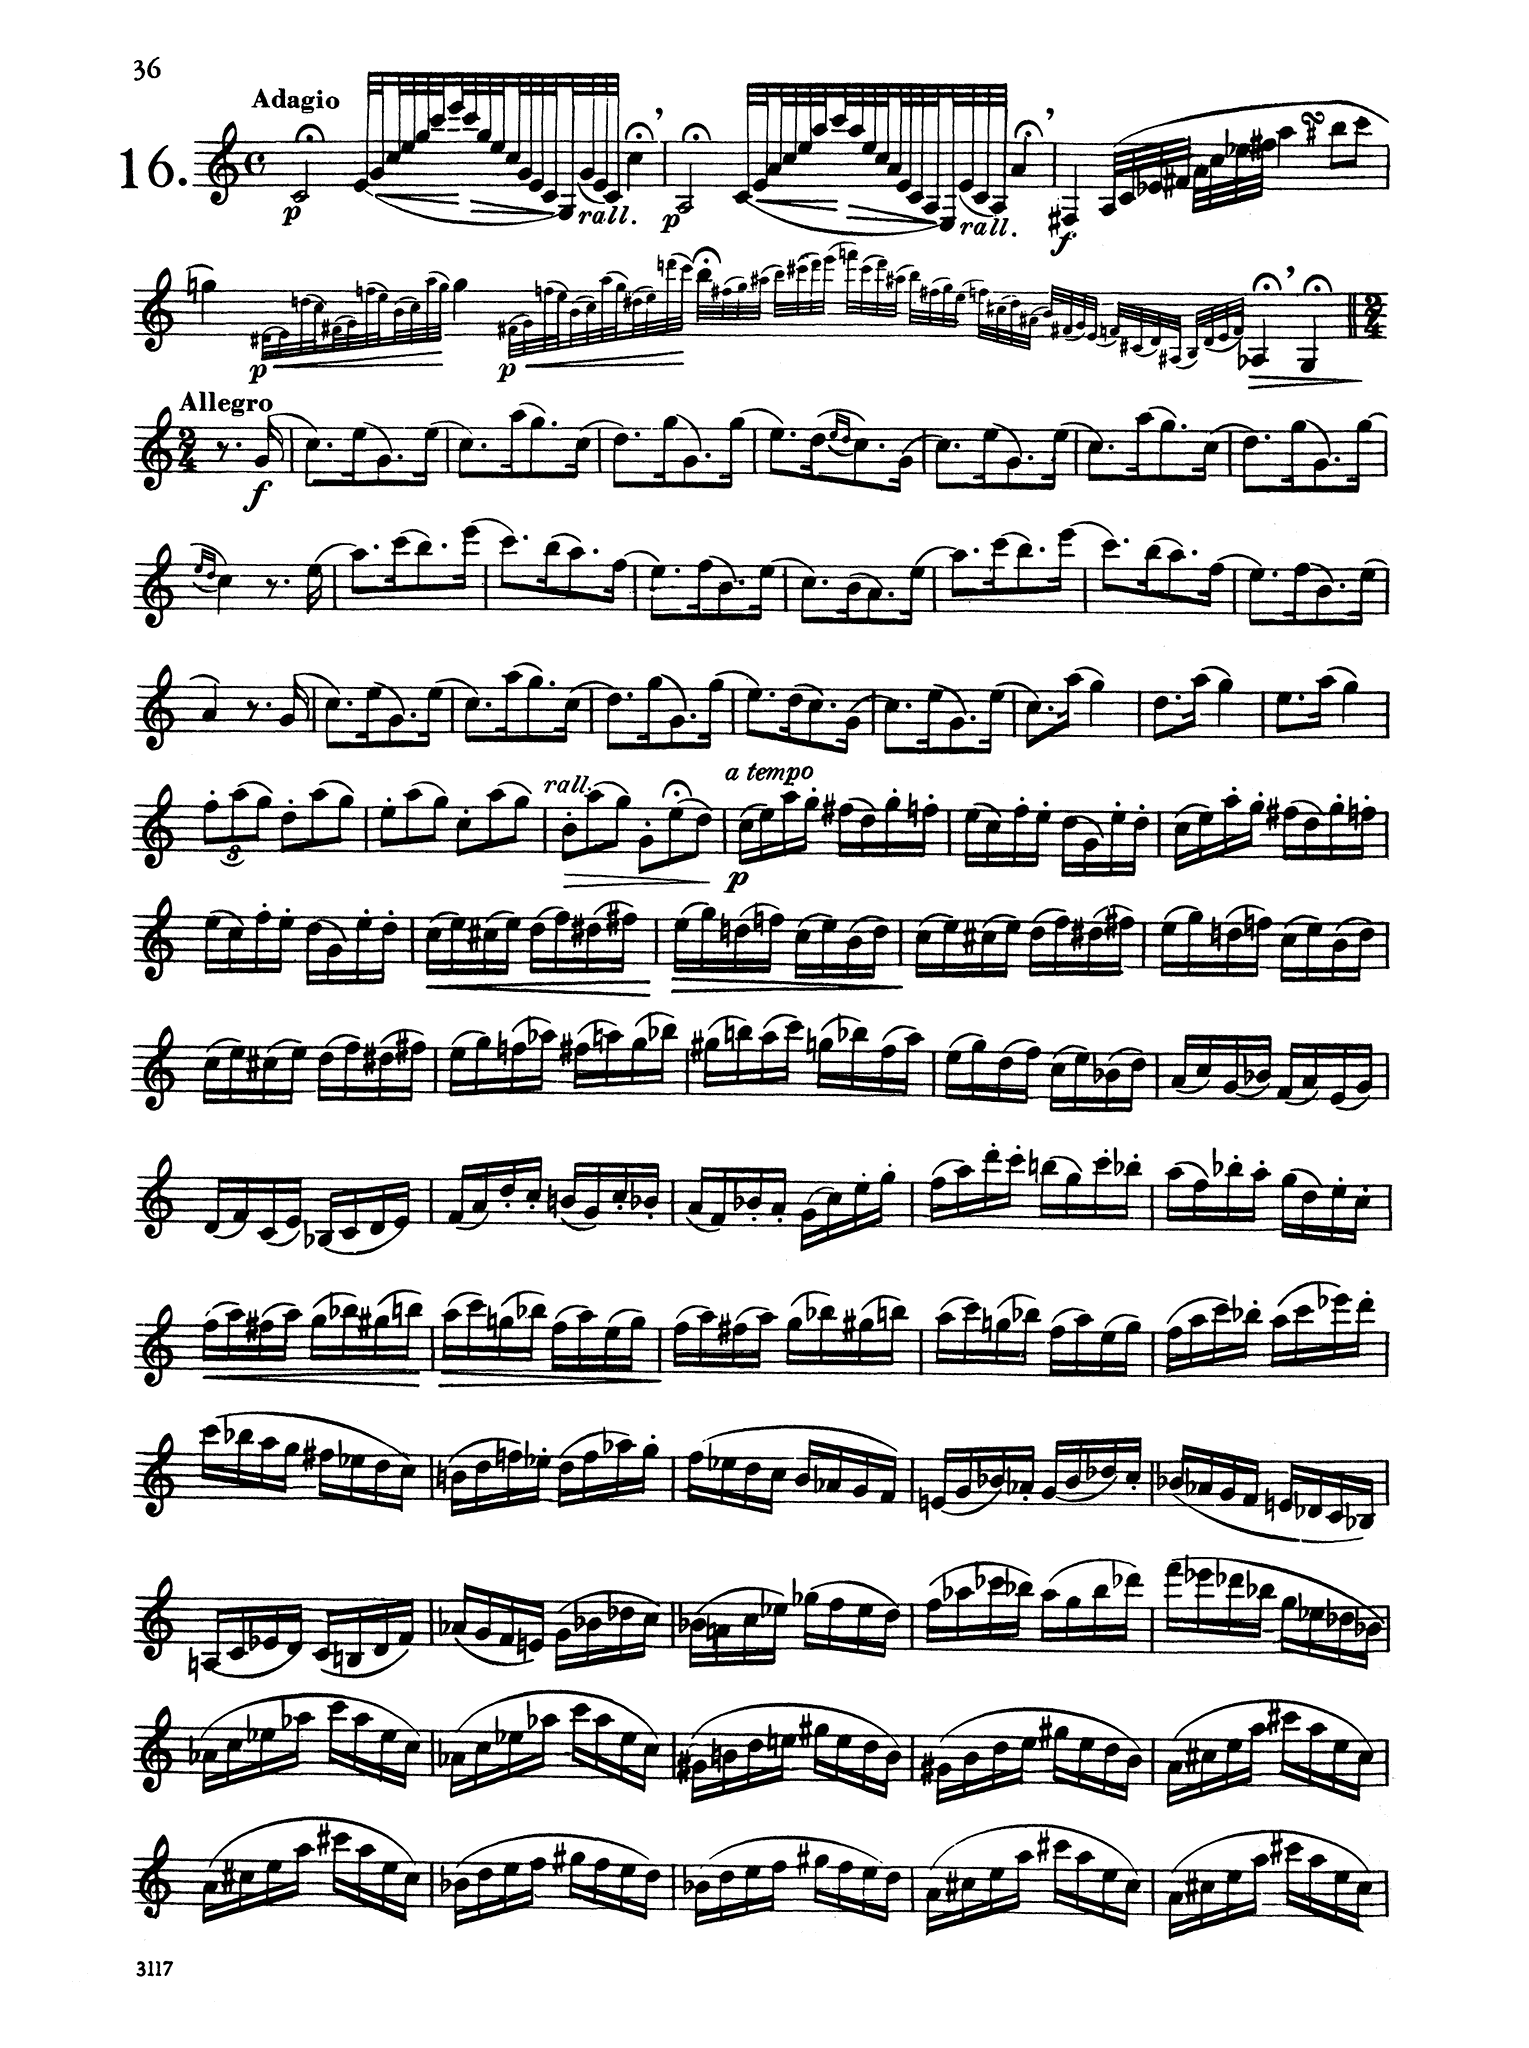 30 Caprices for Clarinet Page 36